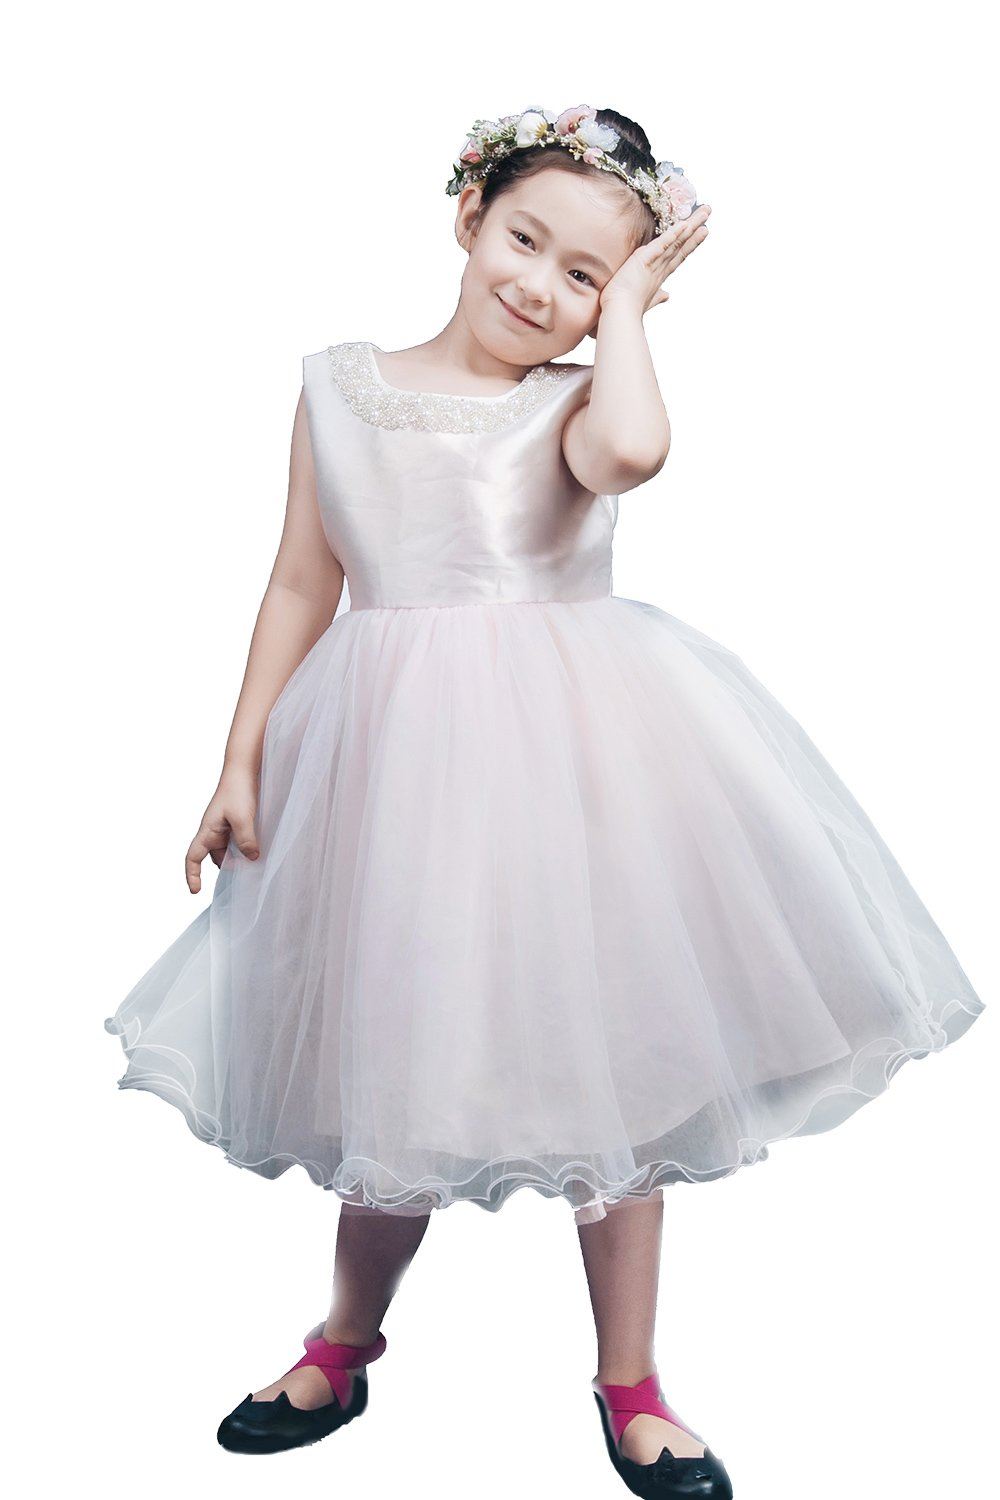 Saint Toi Satin Lace Flower Girl Wedding Dress Gorgeous Princess Gown (custom, silver pink)